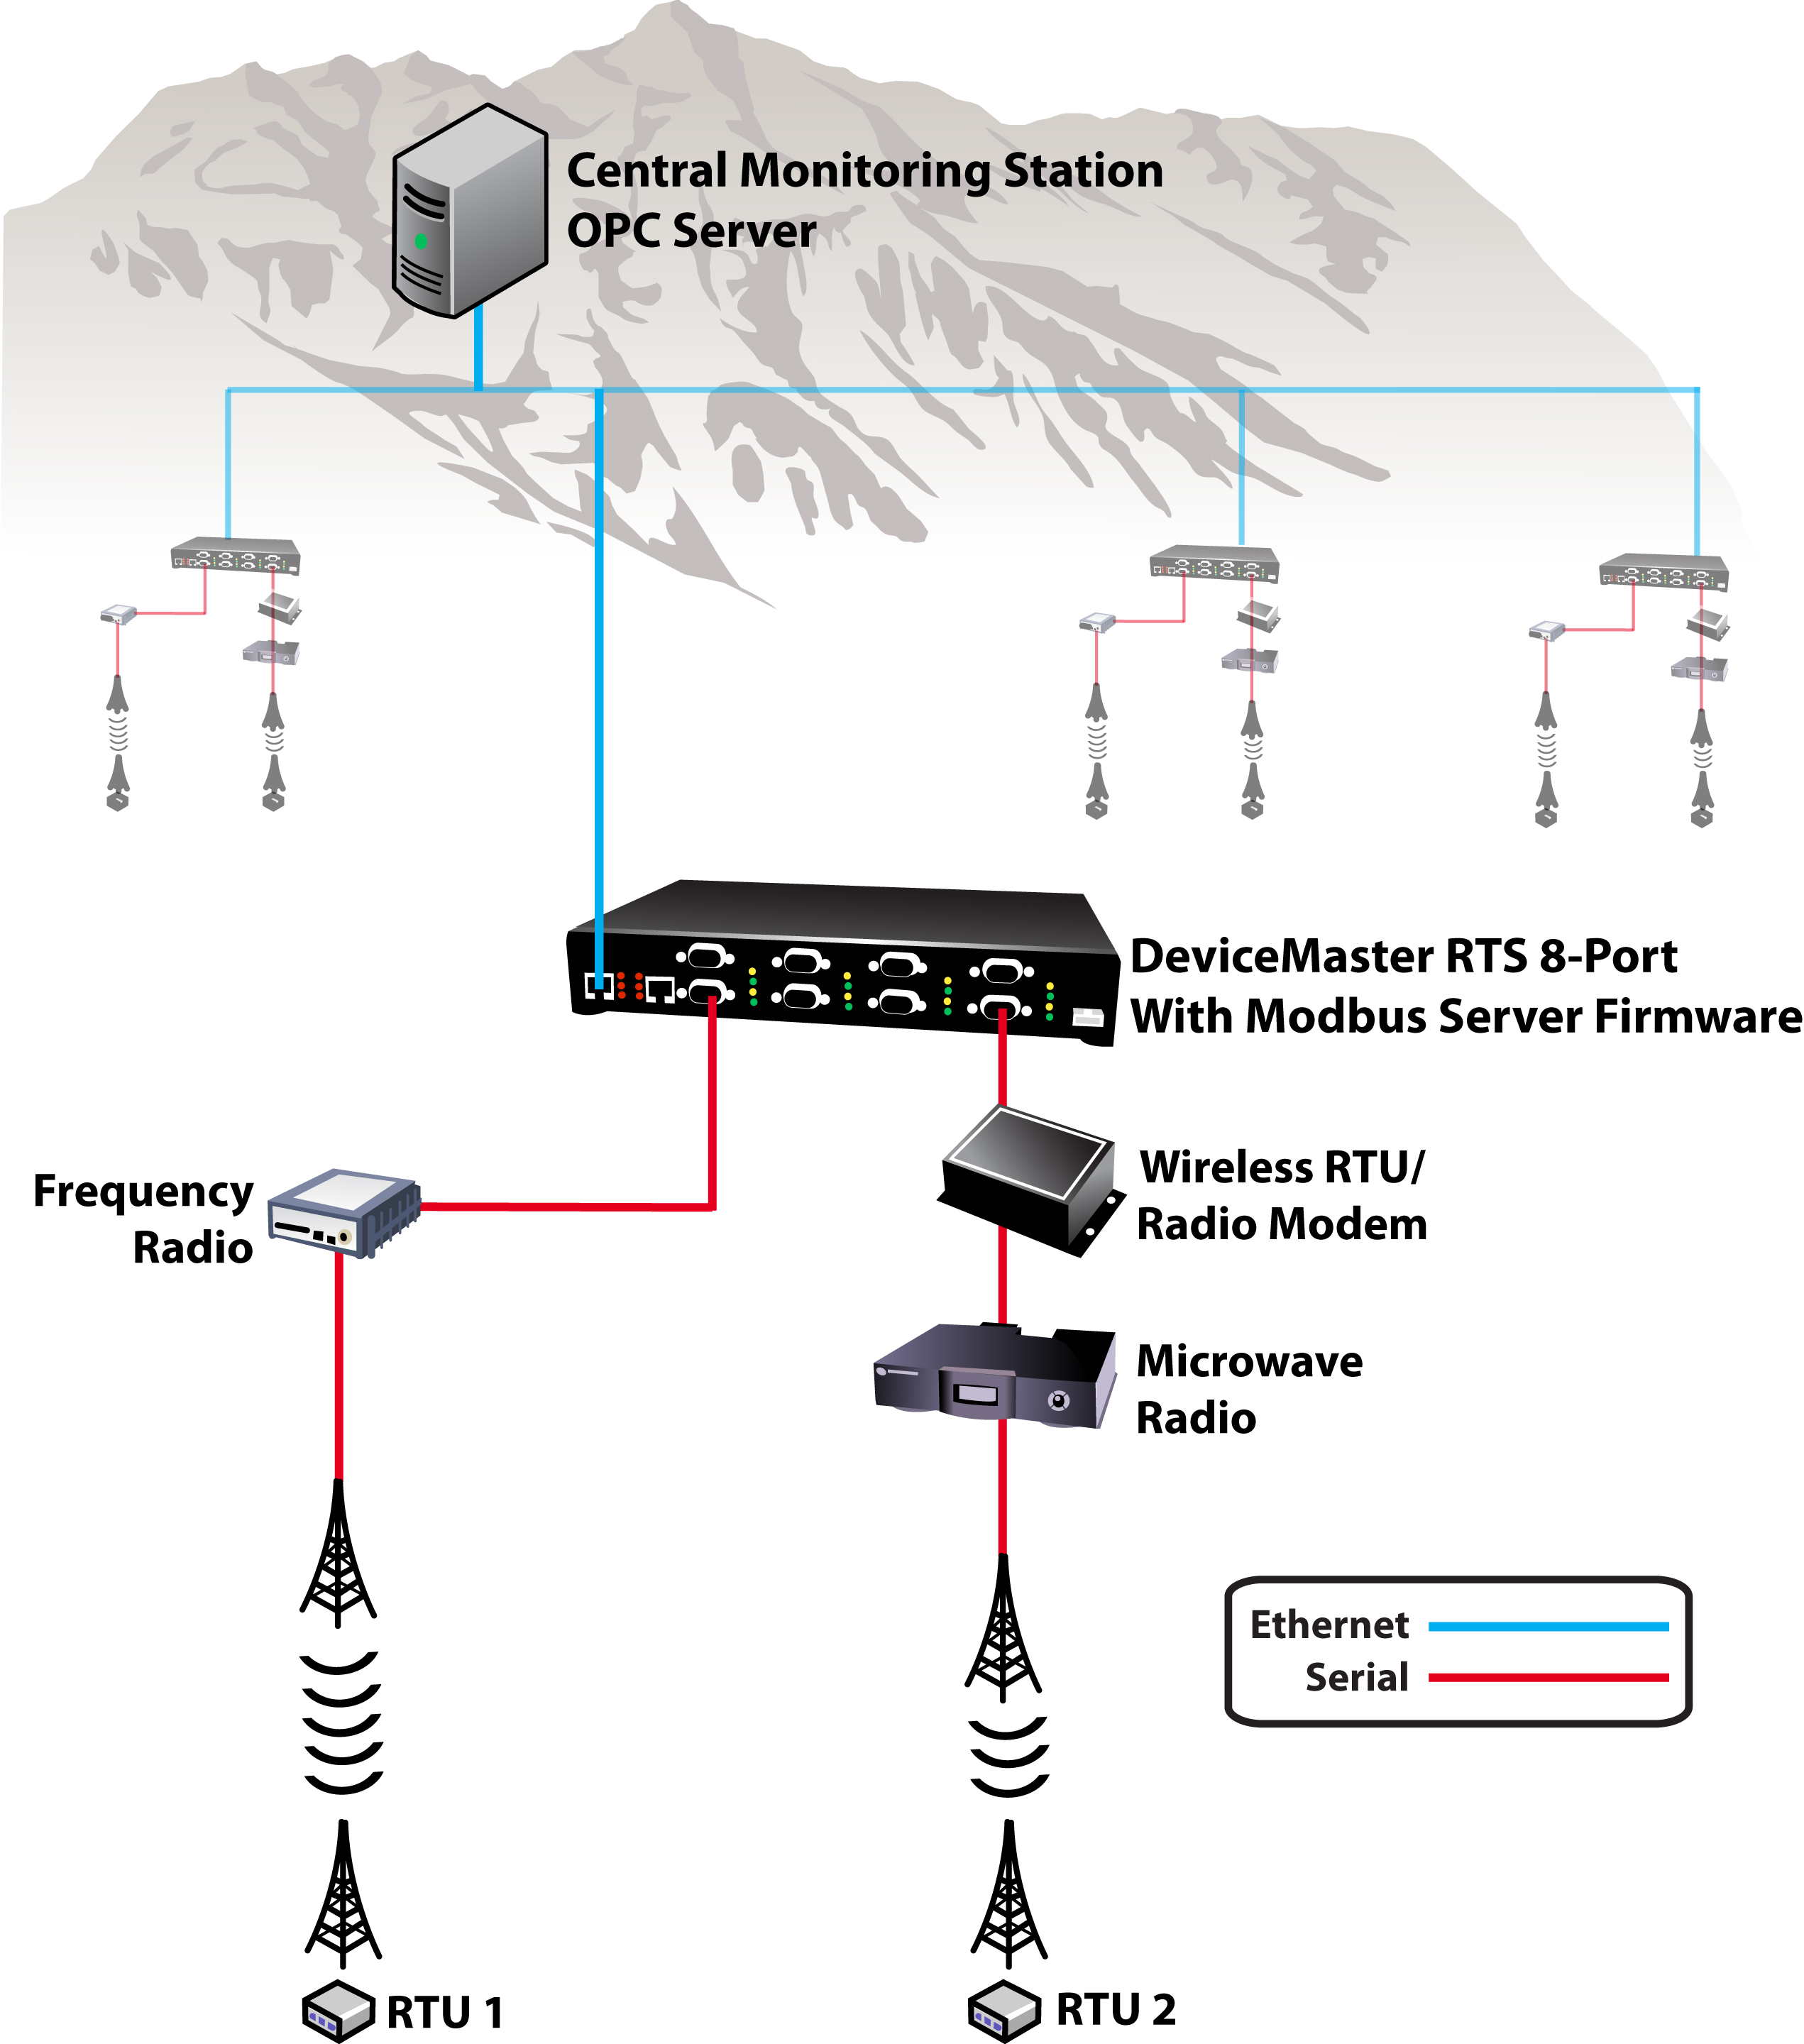 wide area network performance diagnostics modbus server